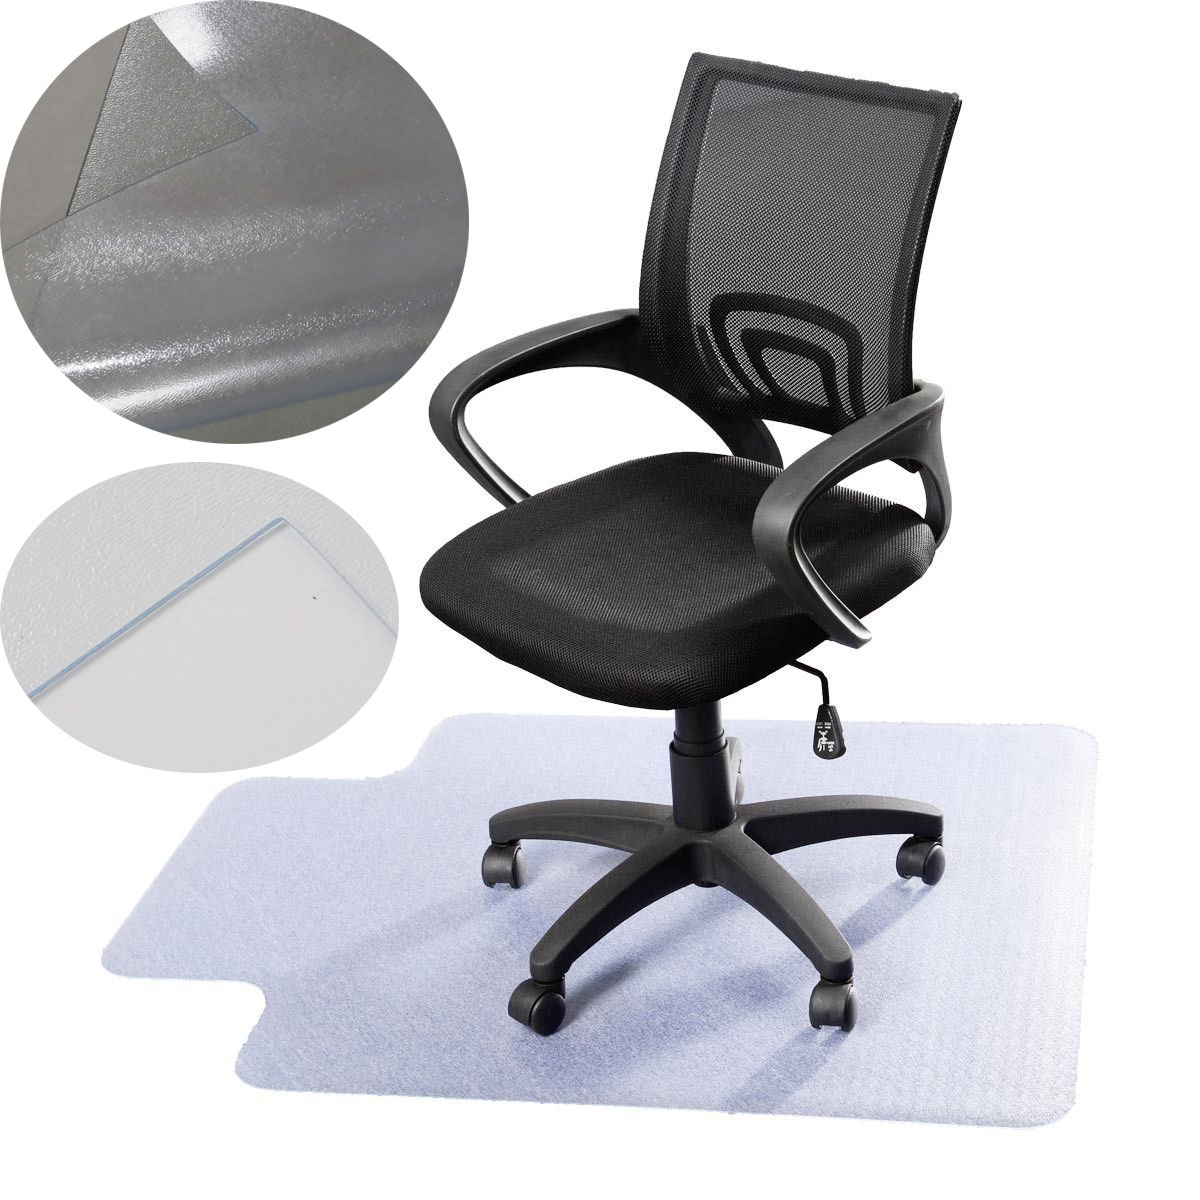 desk chair mats flexsteel rv captain seat covers pro office floor mat protector for hard wood